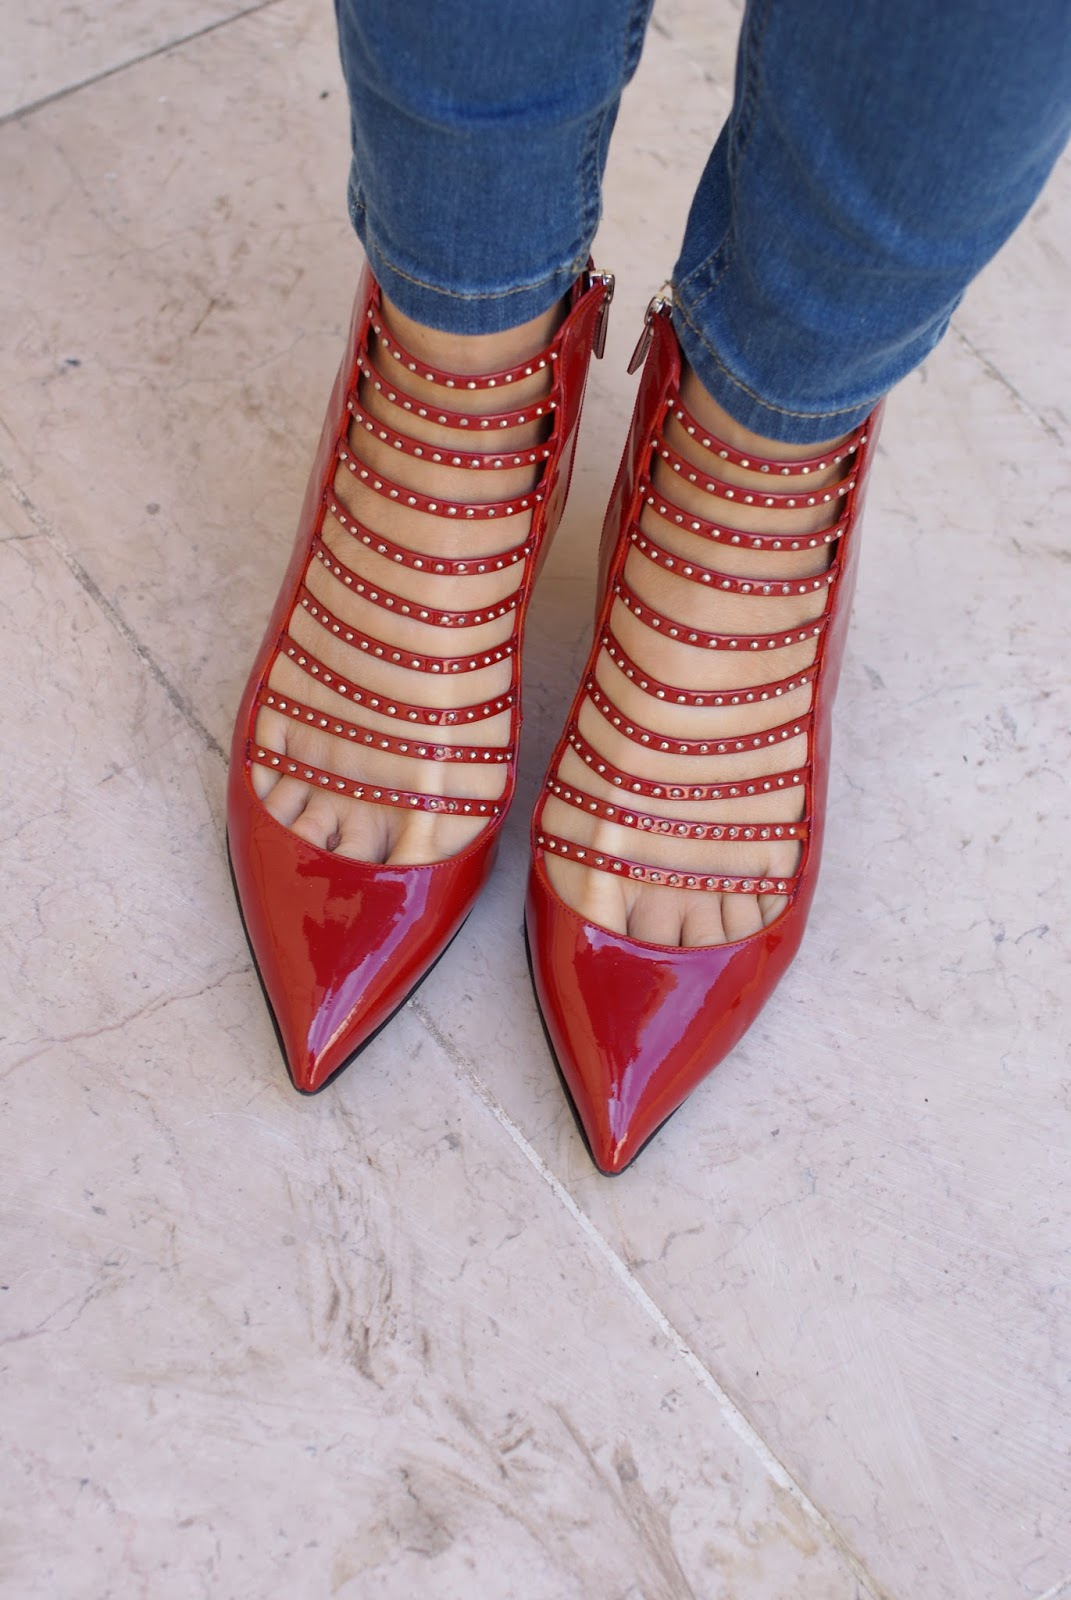 Le Silla scarpe rosse pelle vernice su Fashion and Cookies fashion blog, italian fashion blogger